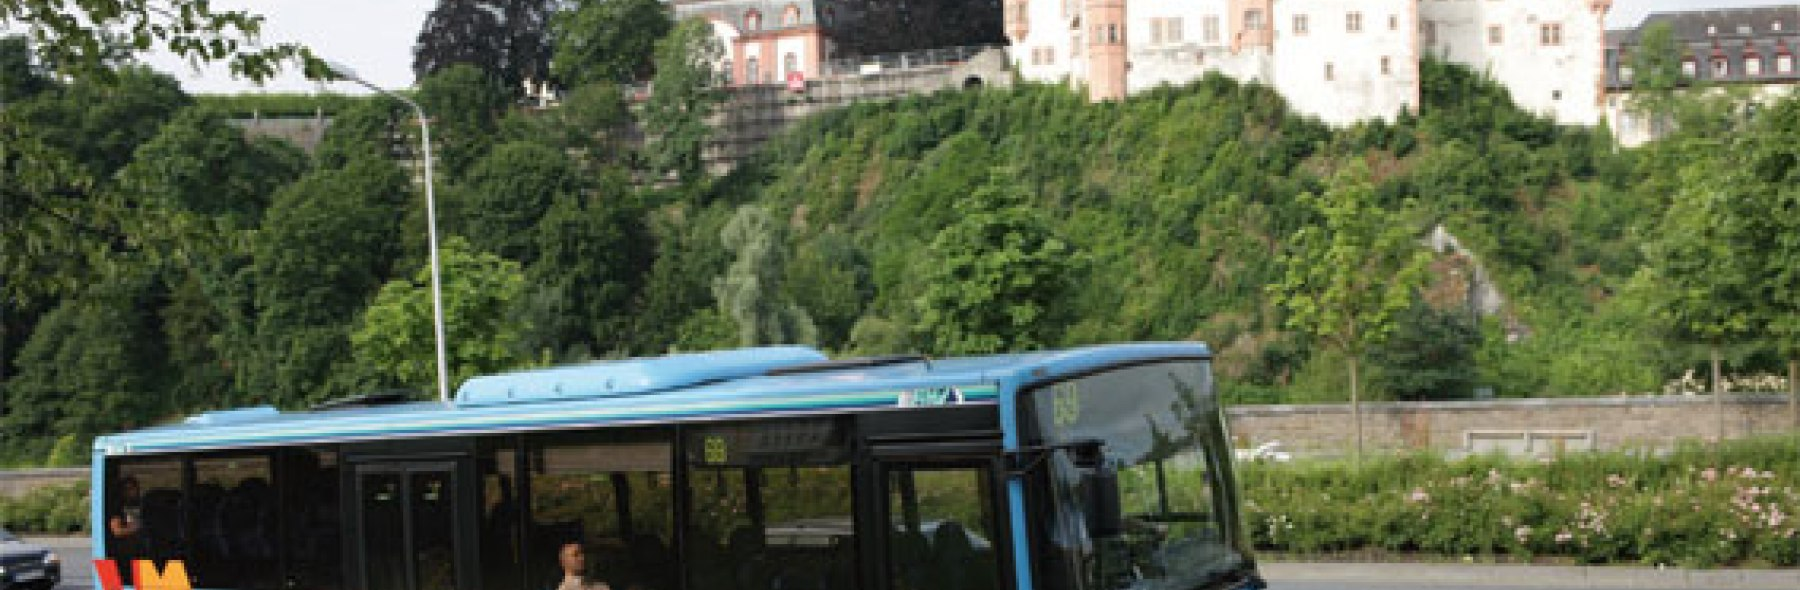 Blue bus parked